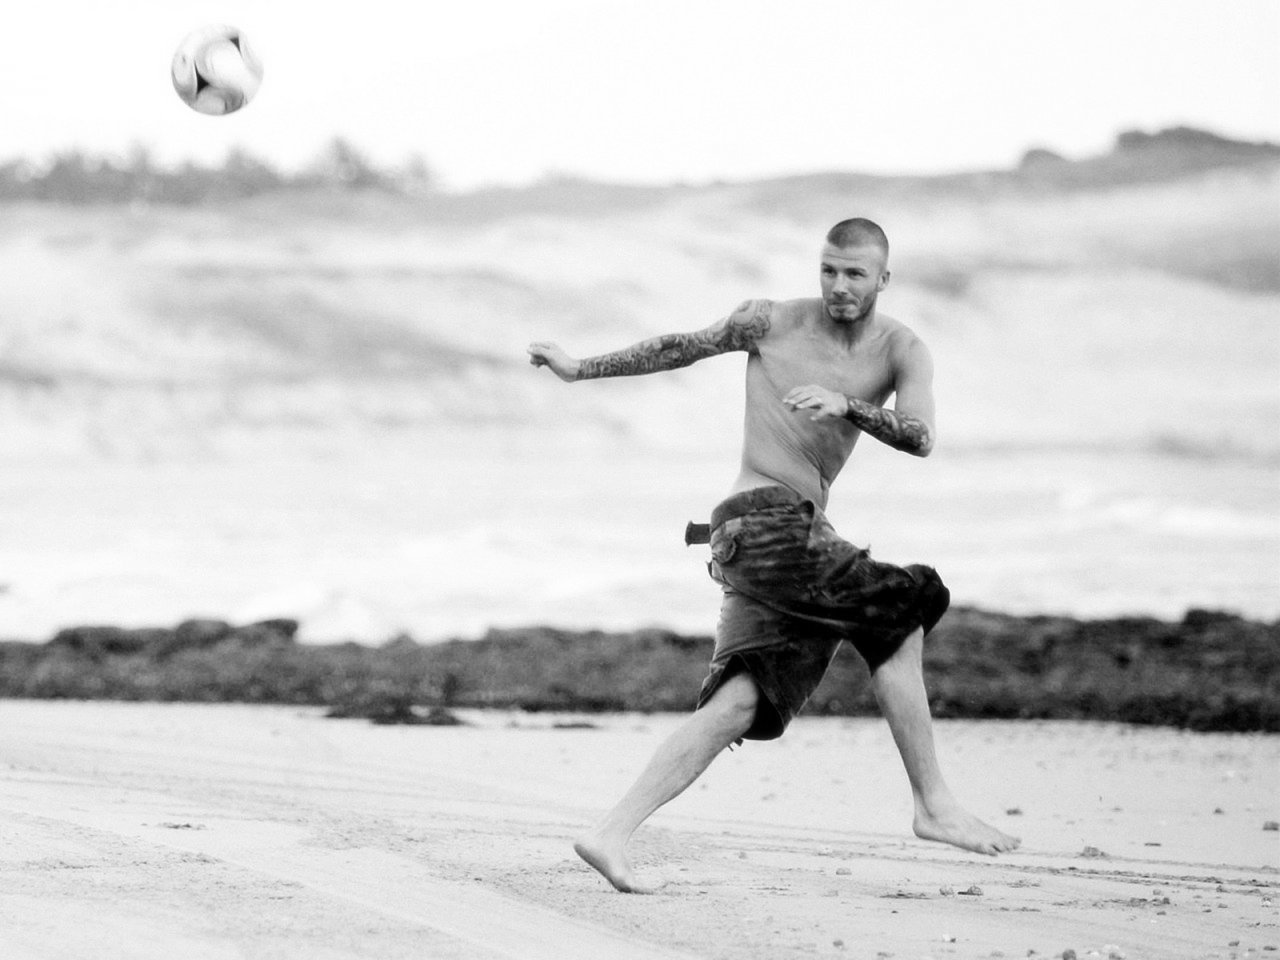 David Beckham playing on beach black and white Photography